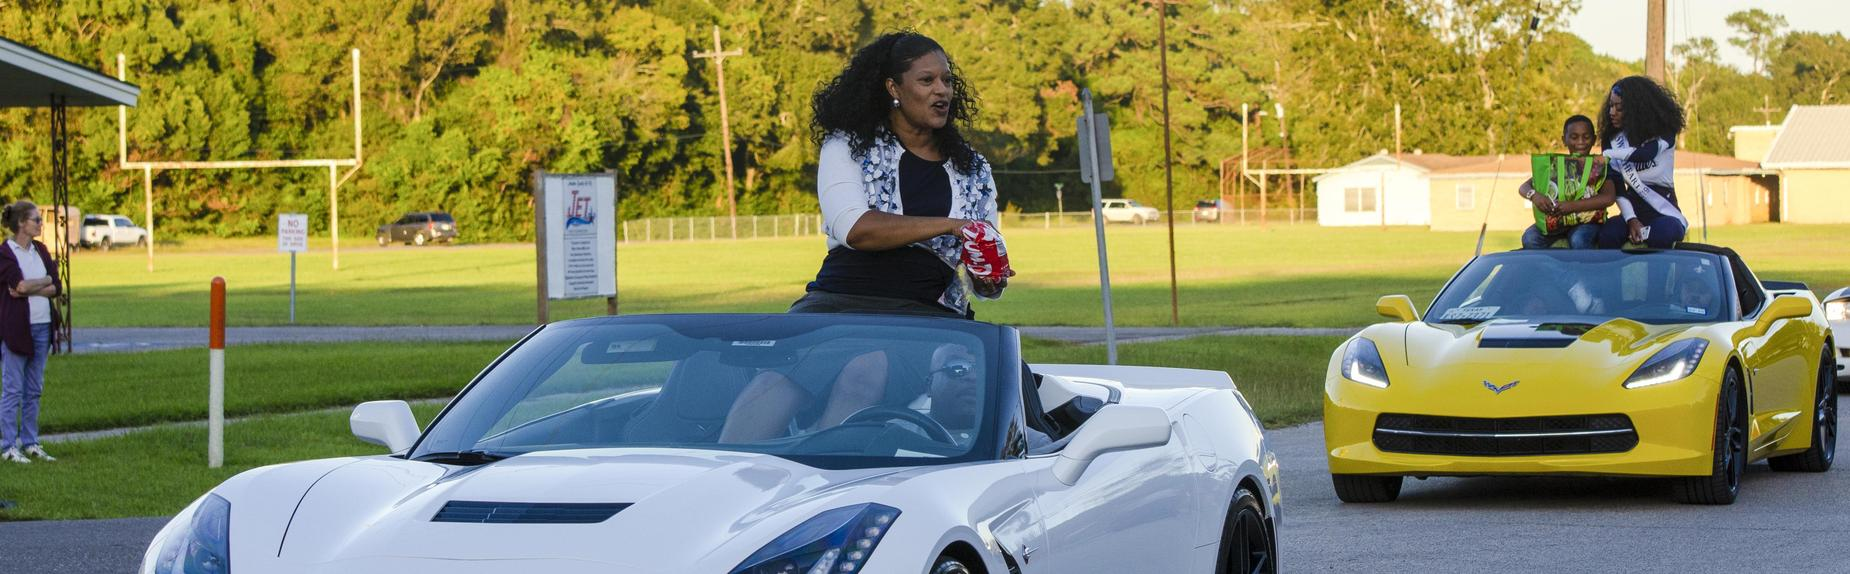 Mrs. Holifield in Homecoming Parade